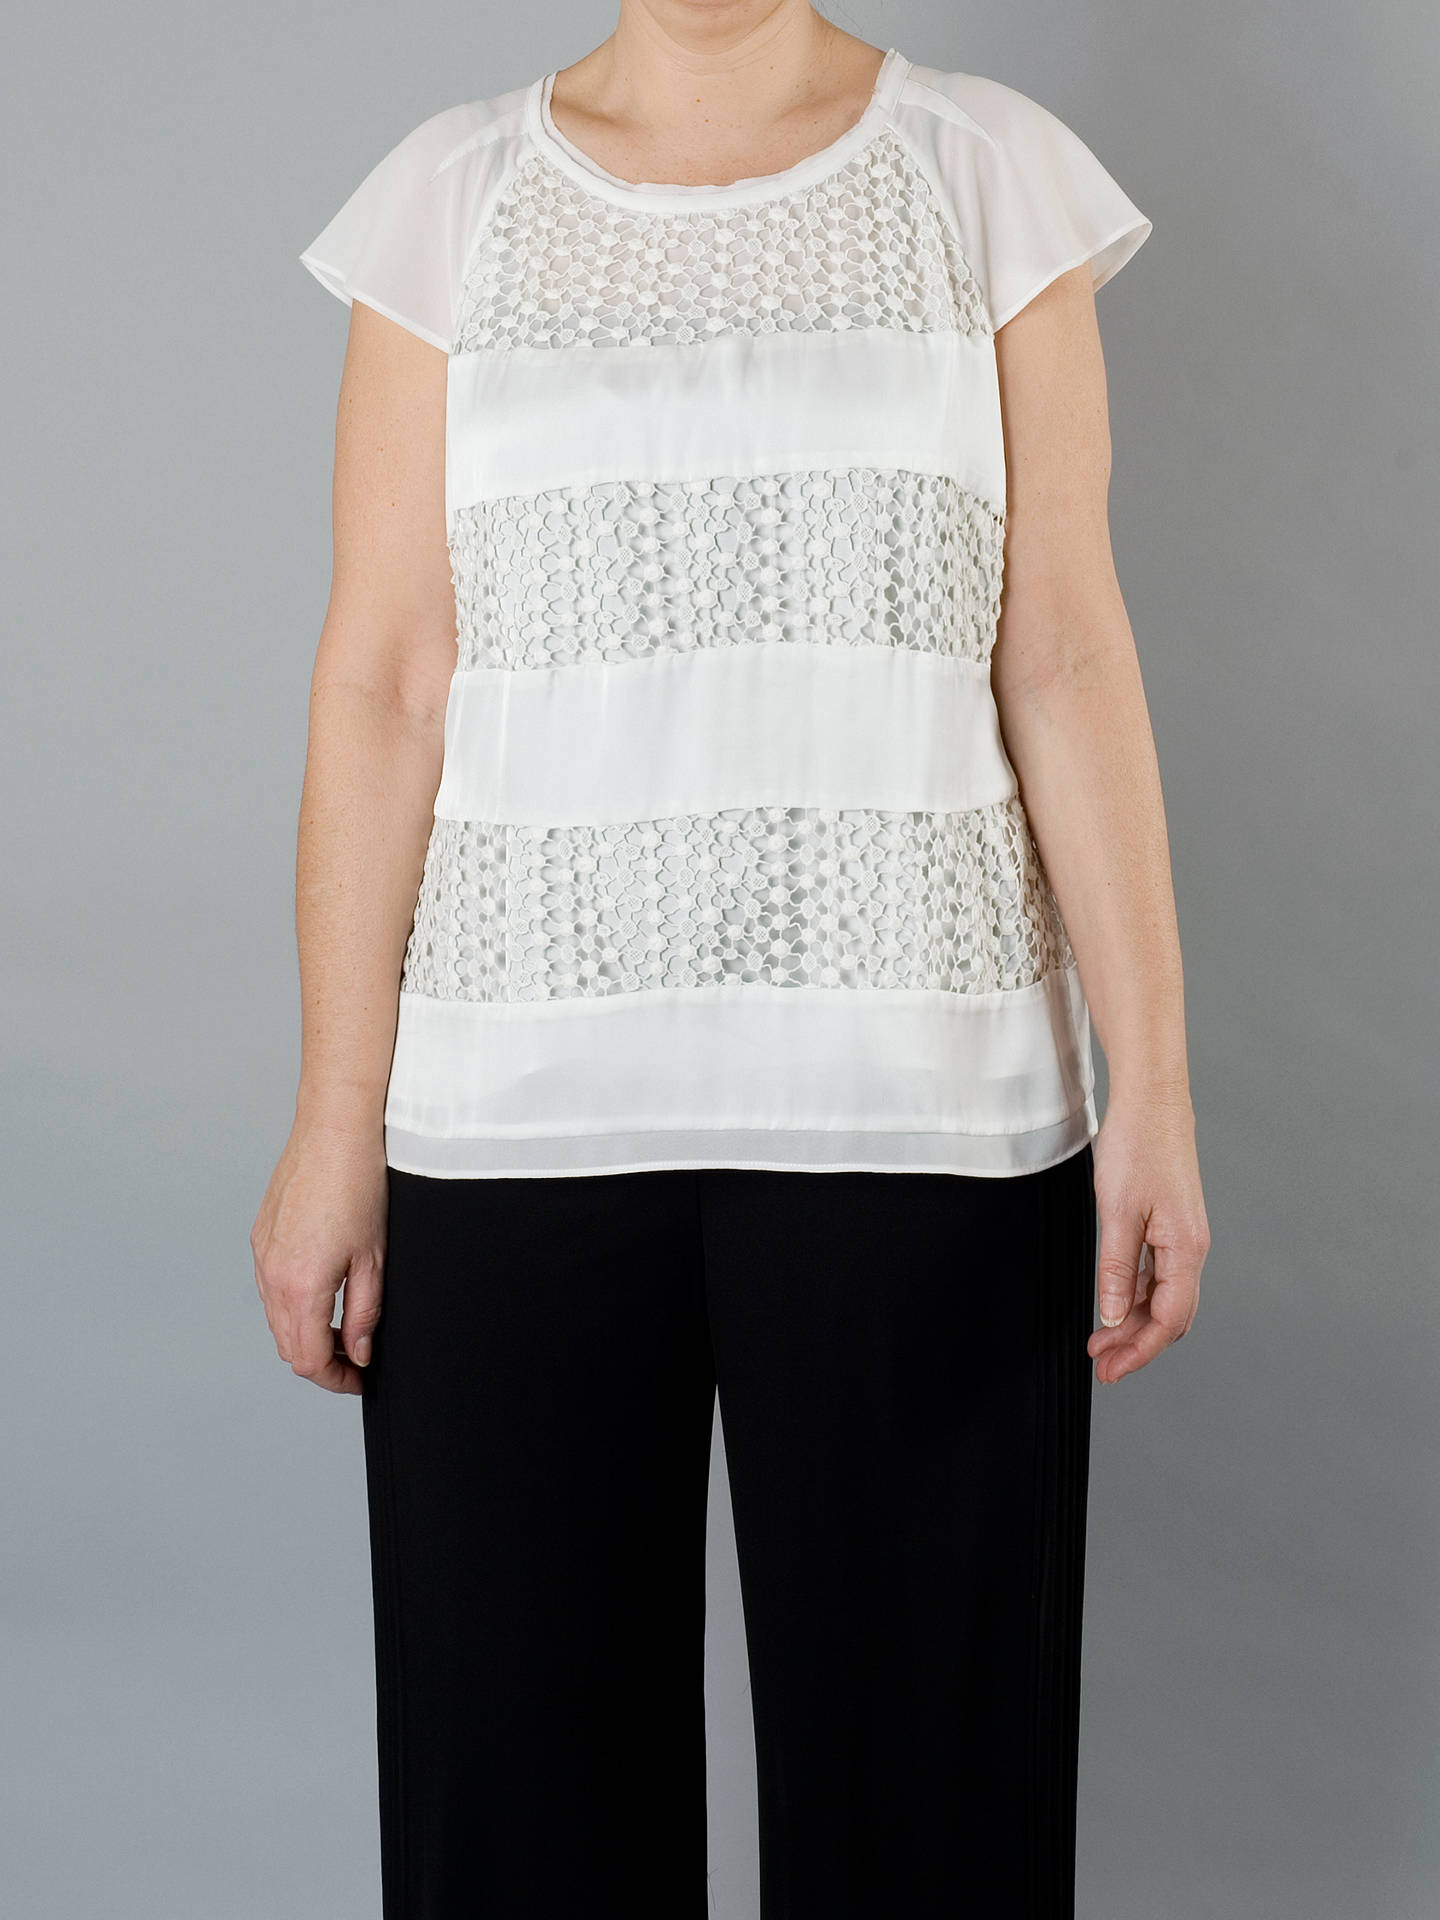 BuyChesca Lace Chiffon Top, Ivory, 14 Online at johnlewis.com